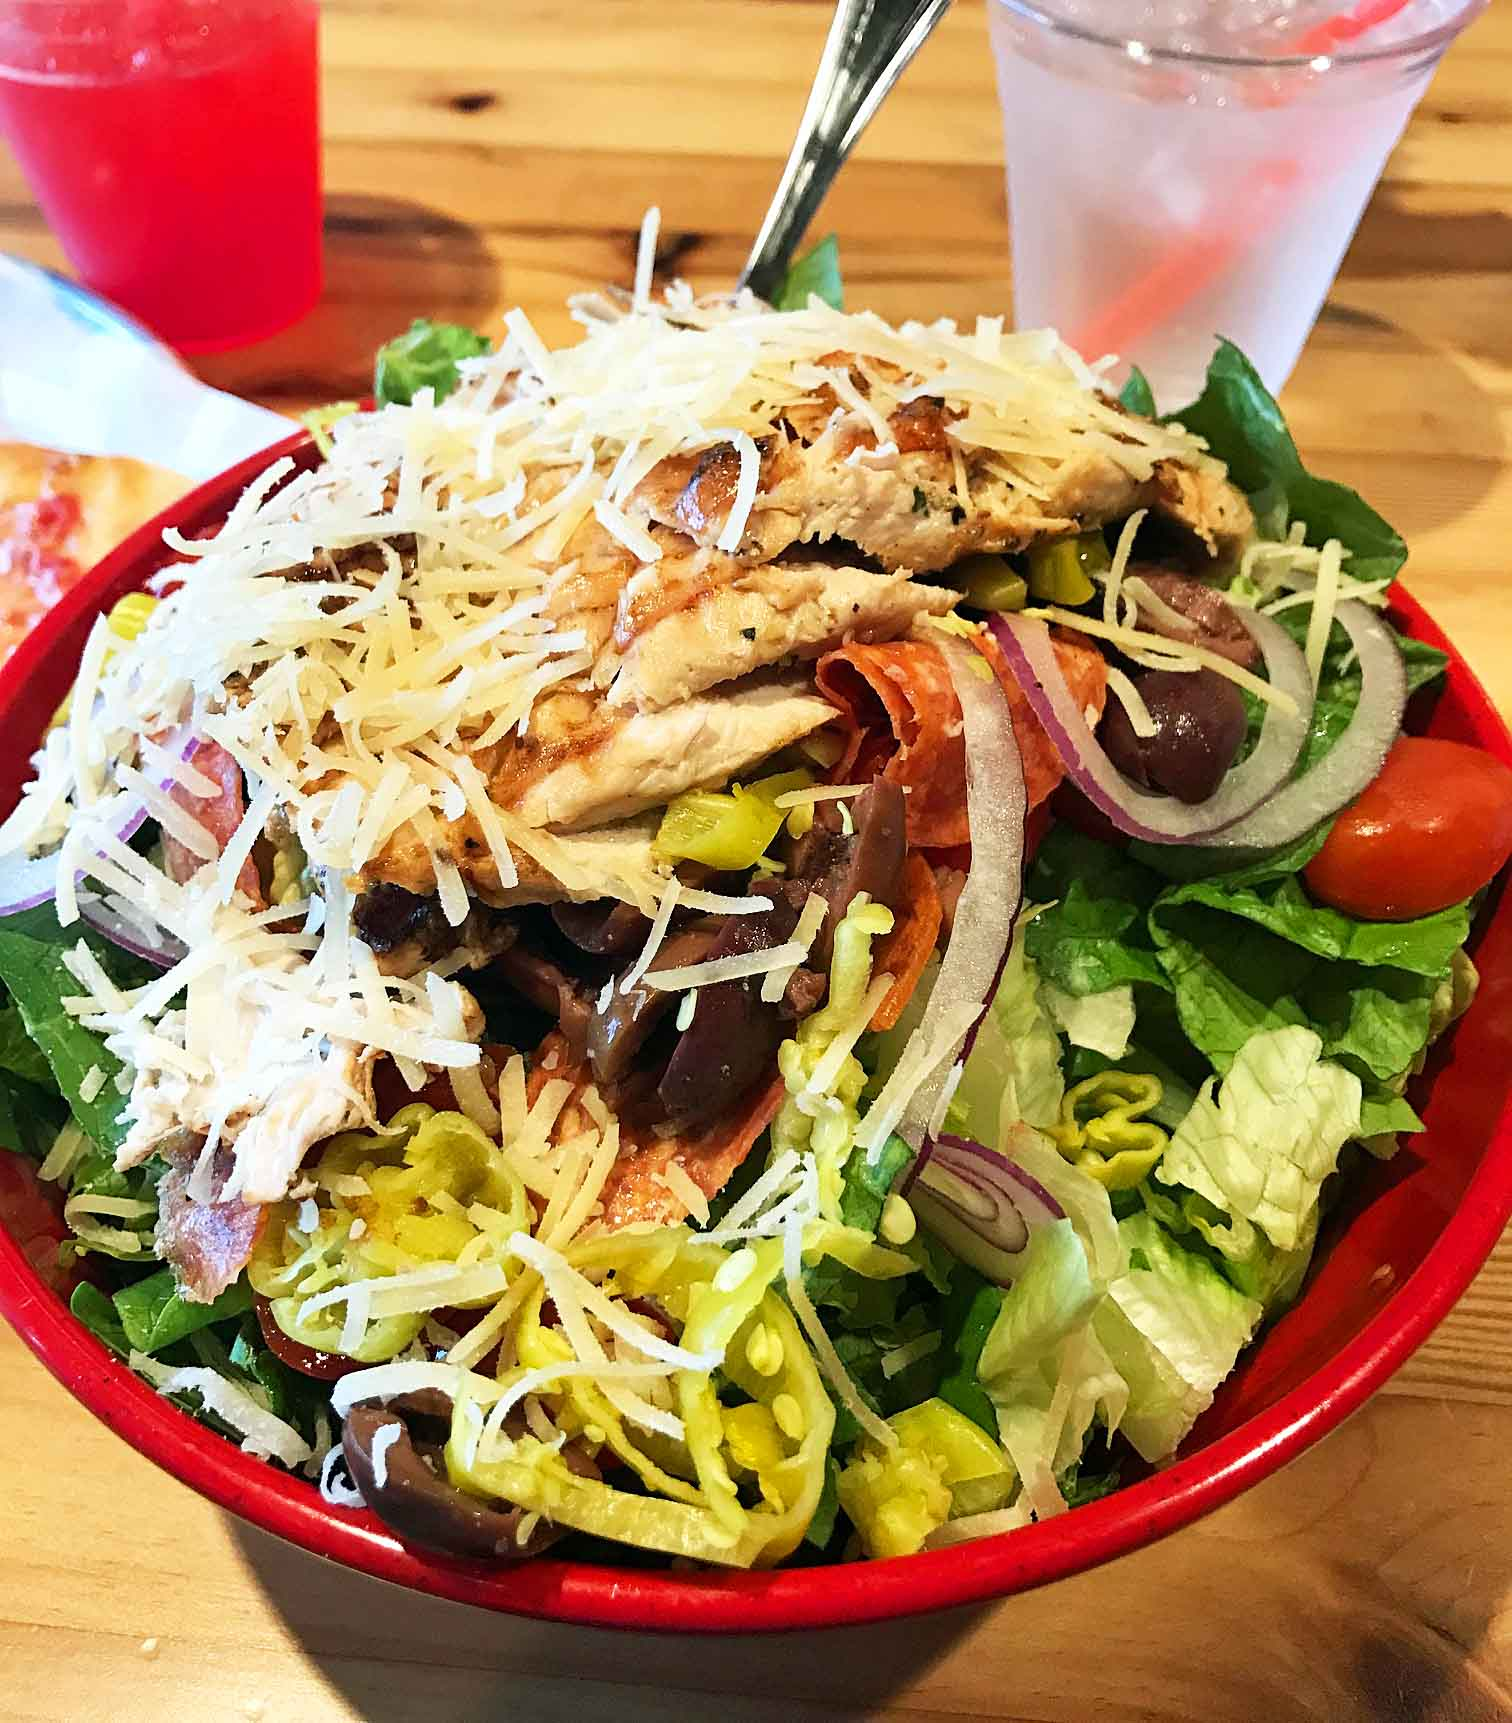 Local Eats Pizza in Gilbert Arizona. Best Places to Eat in Arizona by Modern Honey. A list of all of the favorite and most popular restaurants to eat in Arizona. Tips on the best items to order. www.modernhoney.com